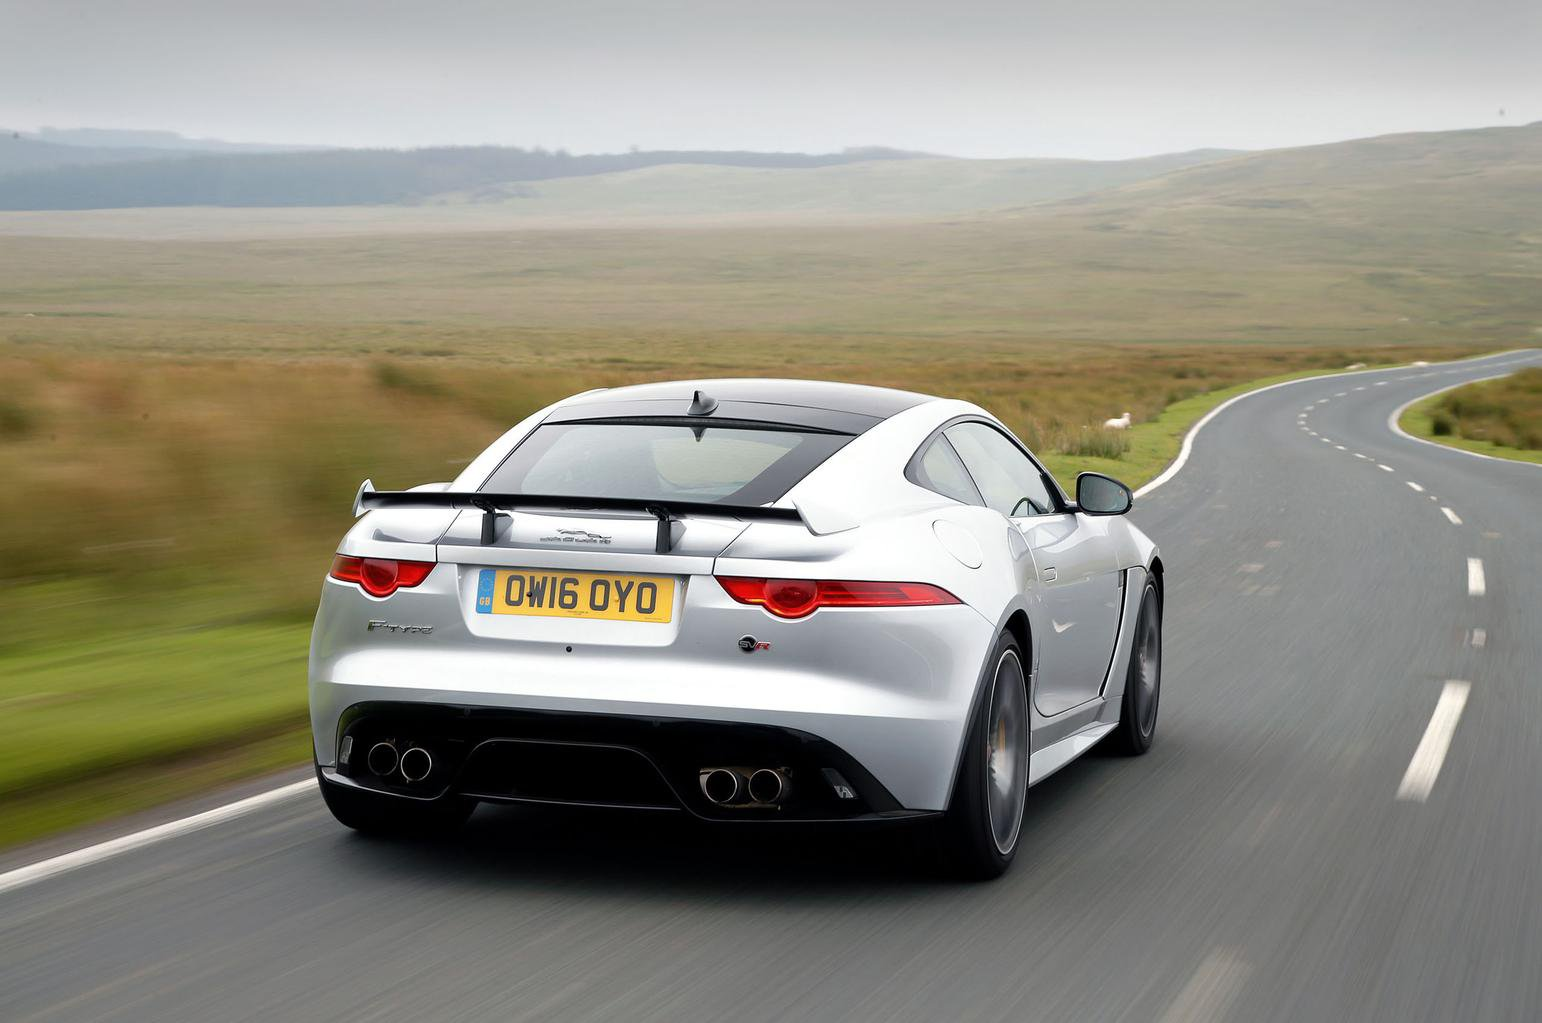 2016 Jaguar F-Type SVR review